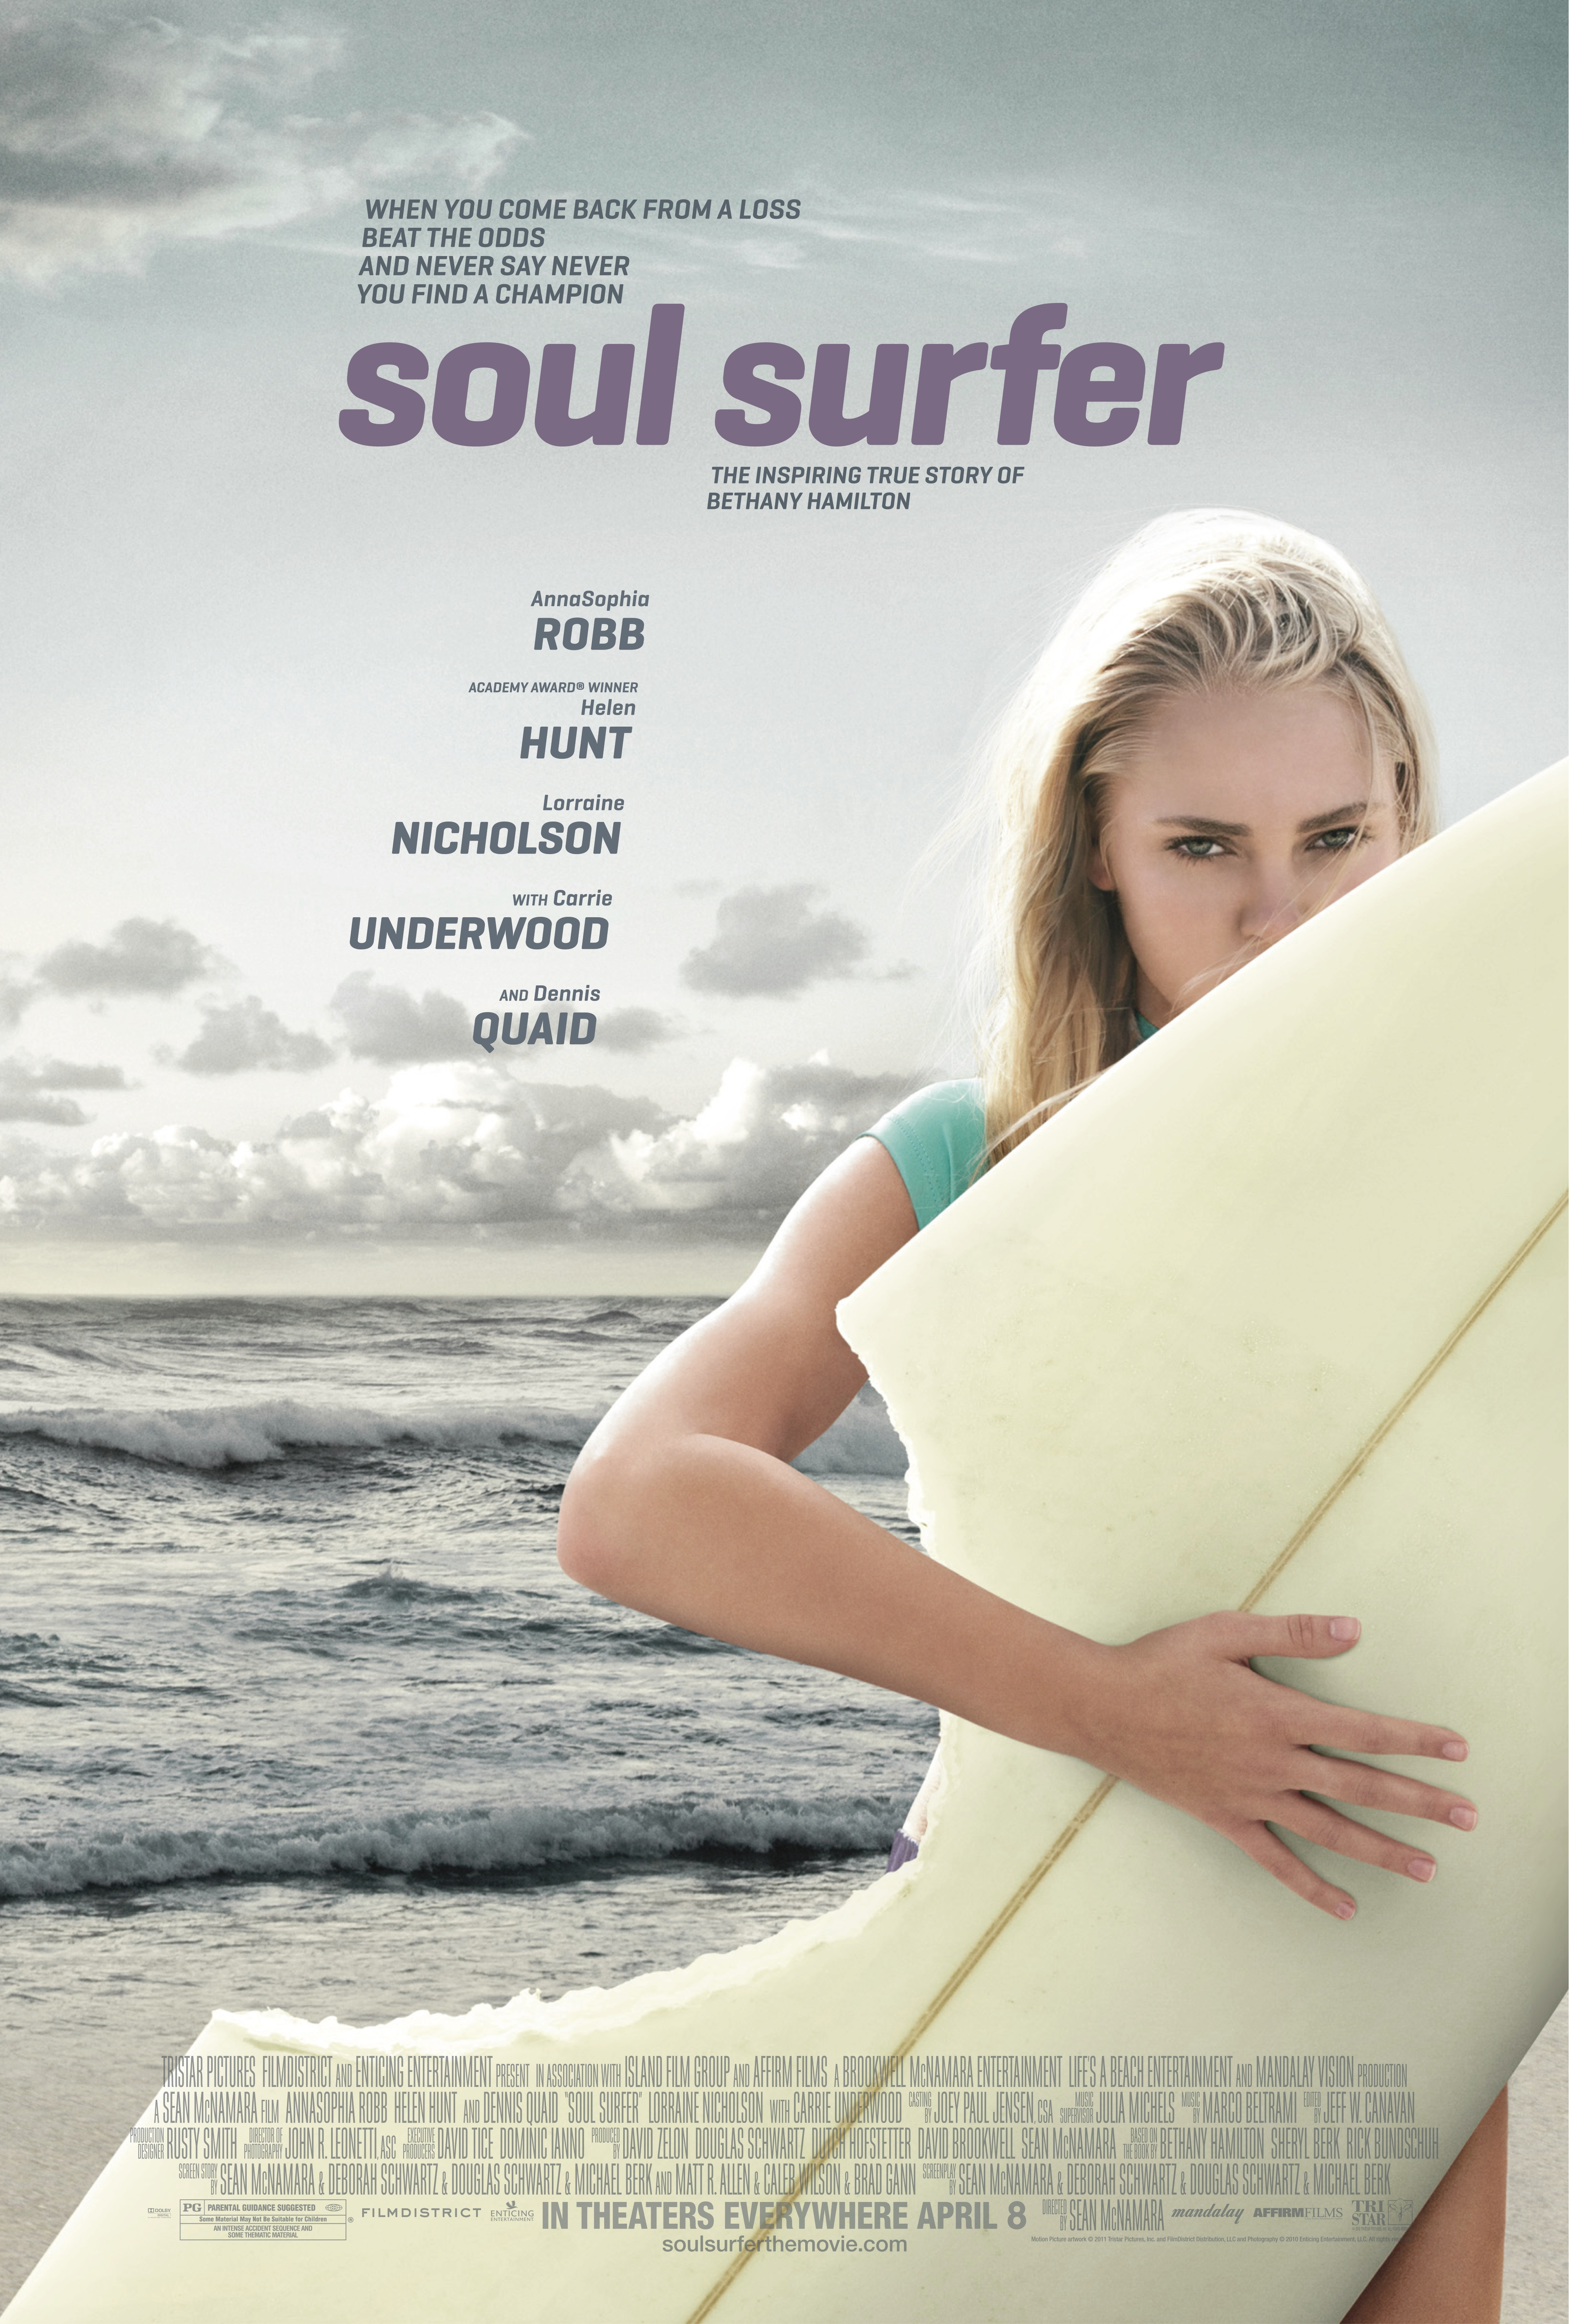 soul surfer Soul surfer is a 2011 american biographical drama film directed by sean mcnamara, based on the 2004 autobiography soul surfer: a true story of faith, family, and fighting to get back on the board by bethany hamilton about her life as a surfer after a horrific shark attack and her recovery the film stars annasophia robb, helen hunt, dennis quaid, and lorraine nicholson with carrie underwood.